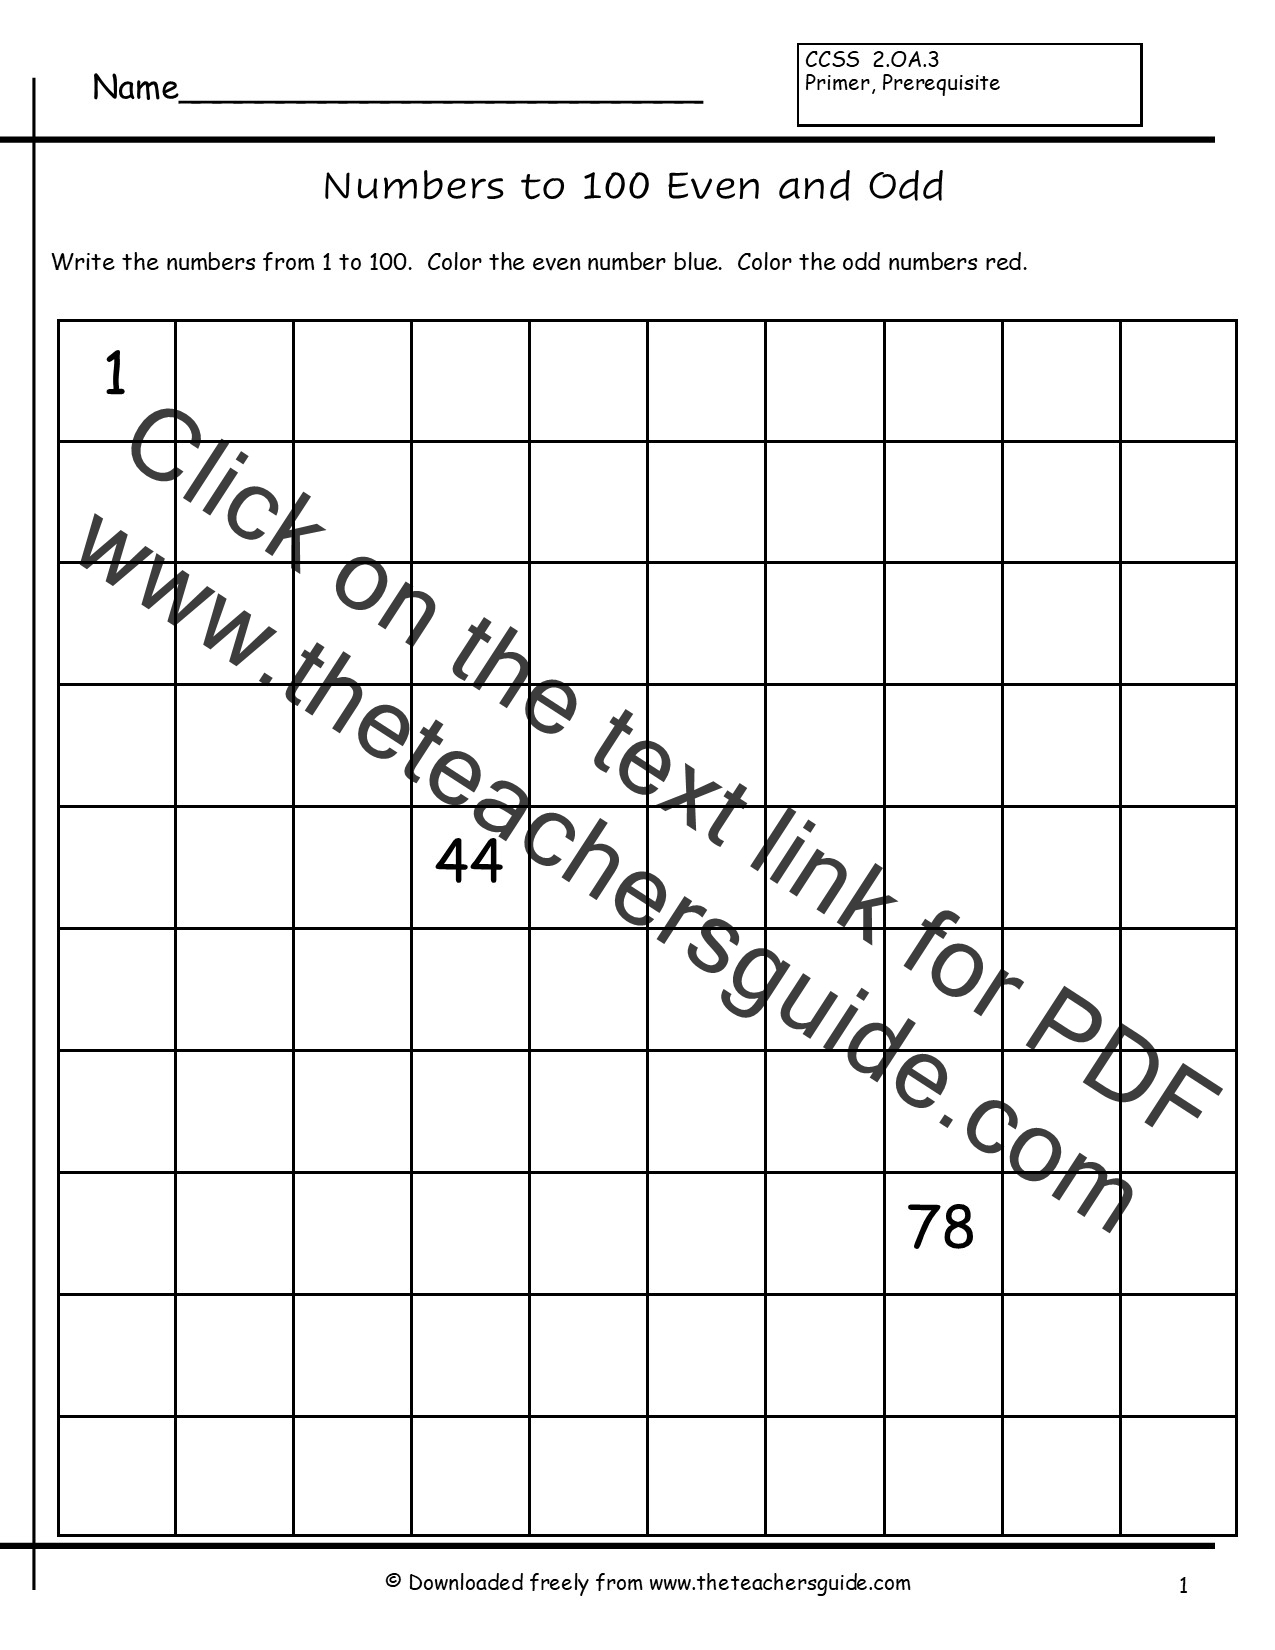 worksheet Odd And Even Worksheets even and odd numbers worksheets from the teachers guide 1 to 100 worksheet